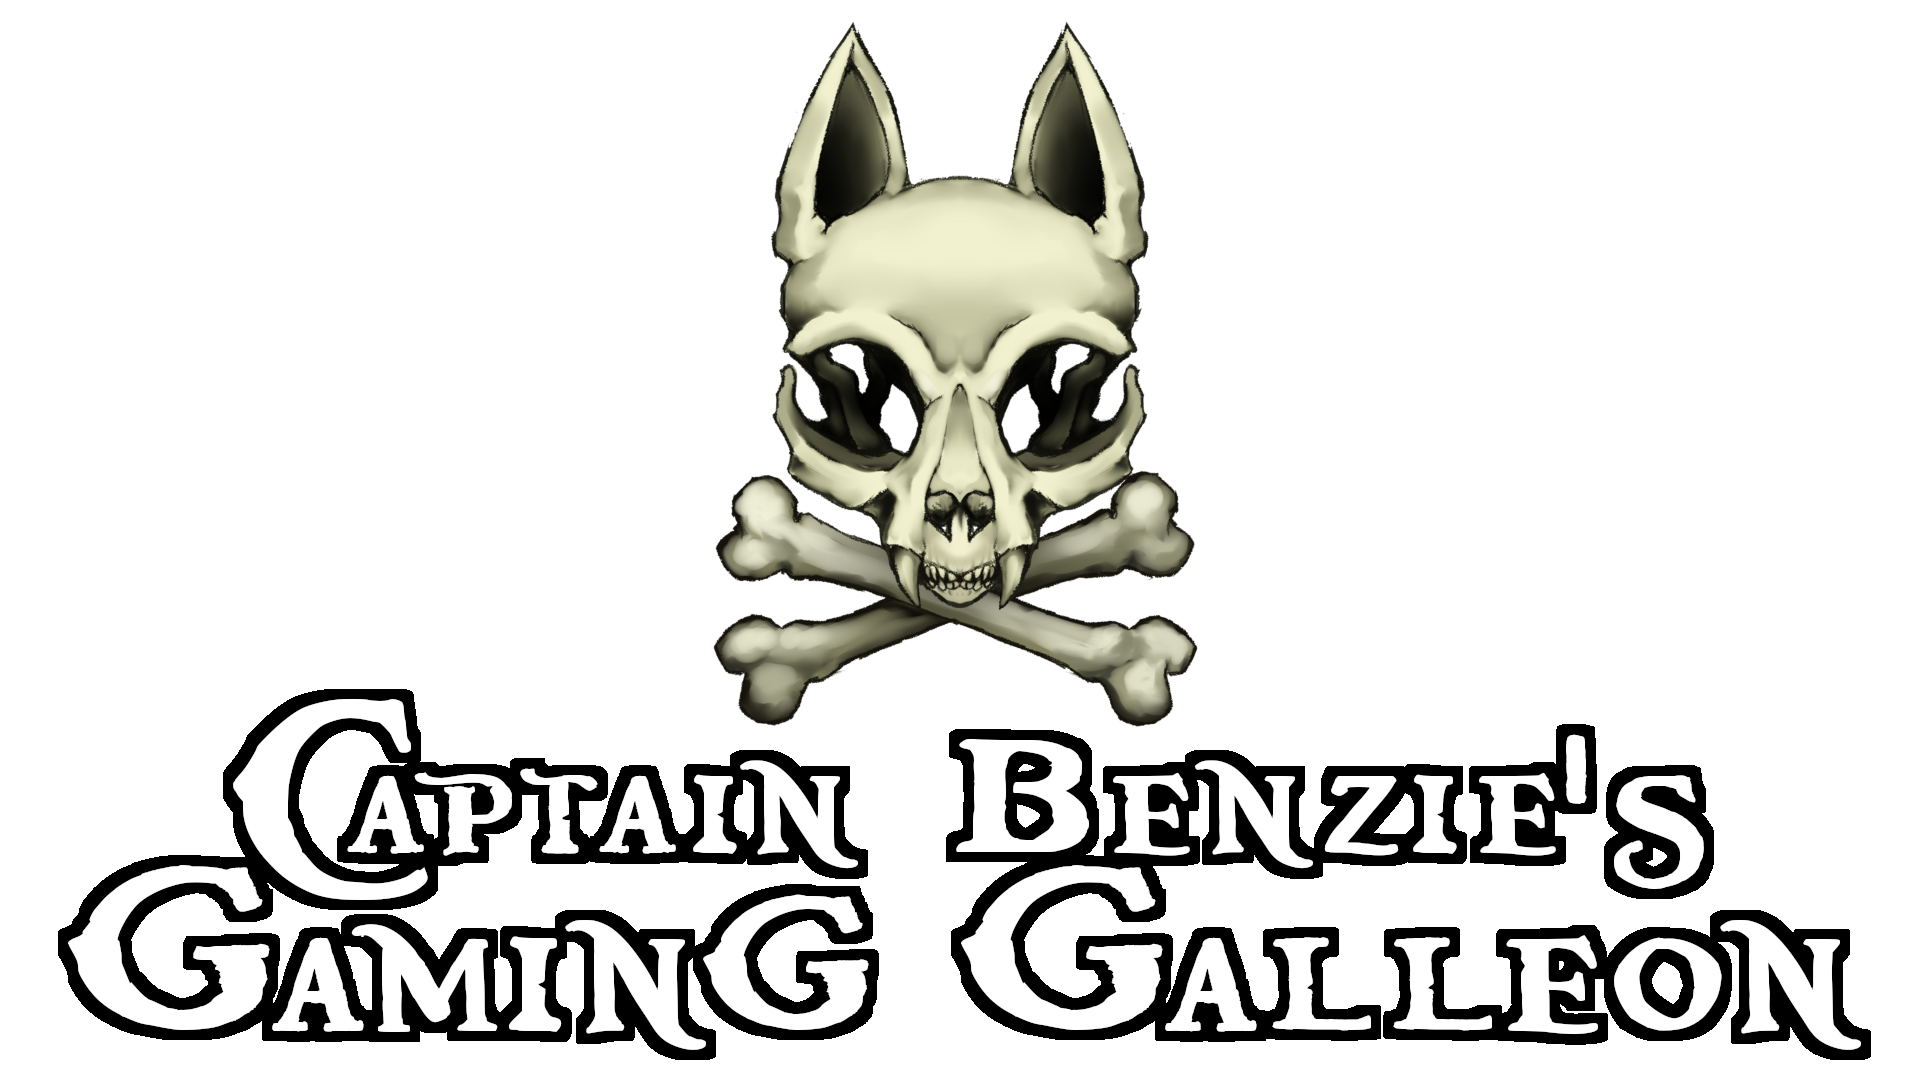 Captain Benzie's Gaming Galleon